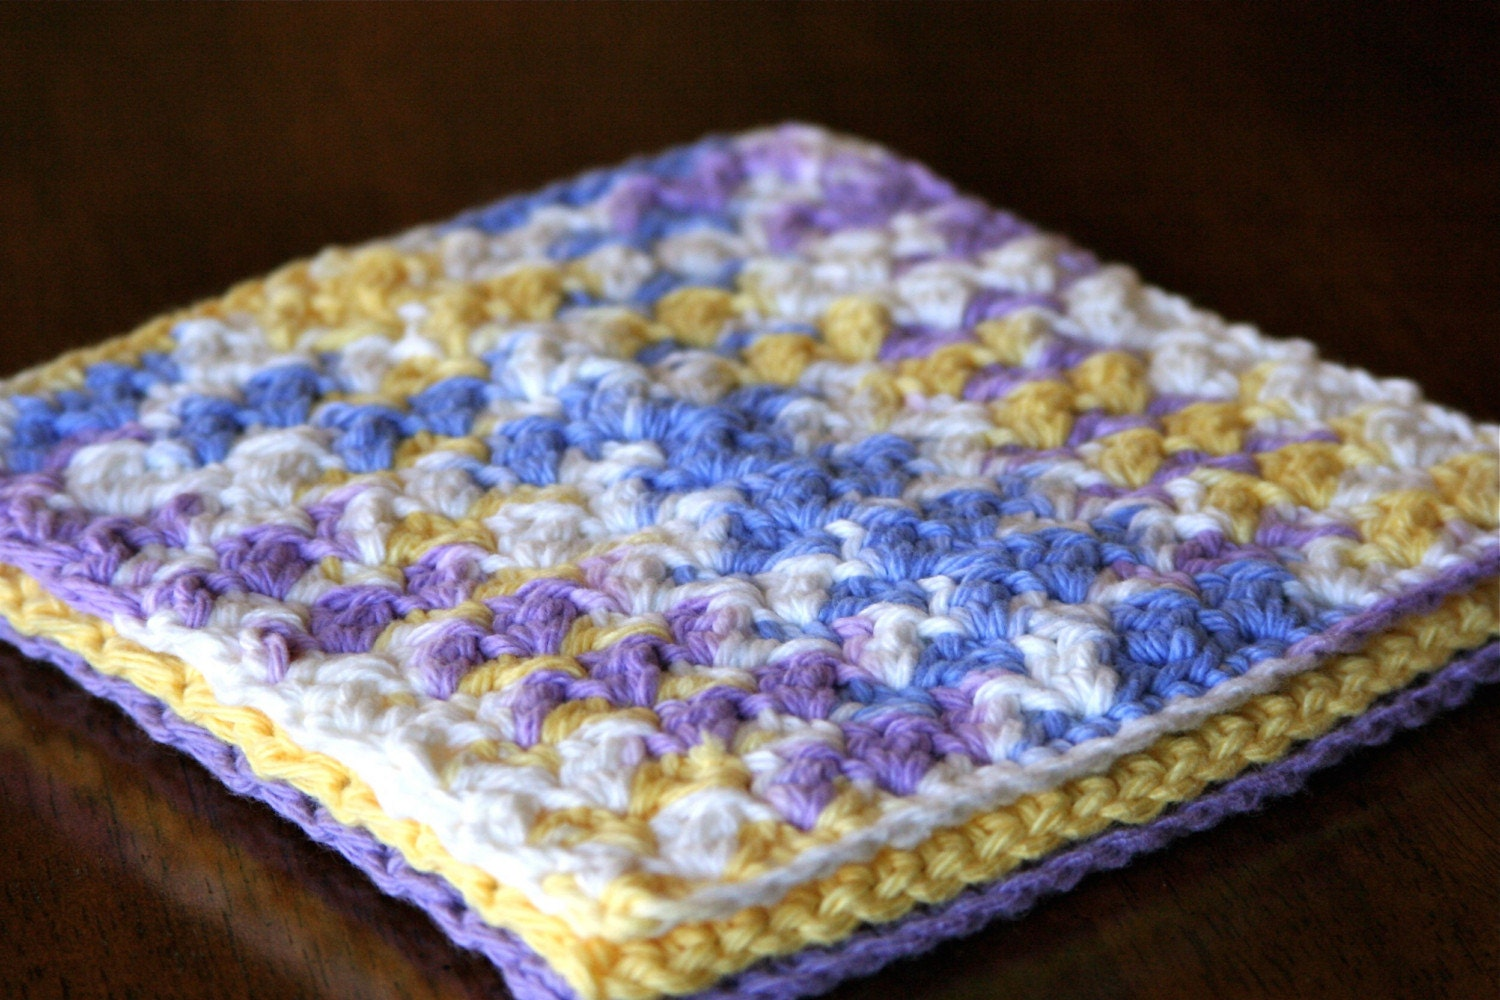 Pretty Purple  6.5 Inch Cotton Washcloth/Dishcloth Set of 3 by OlliesBoutique on Etsy